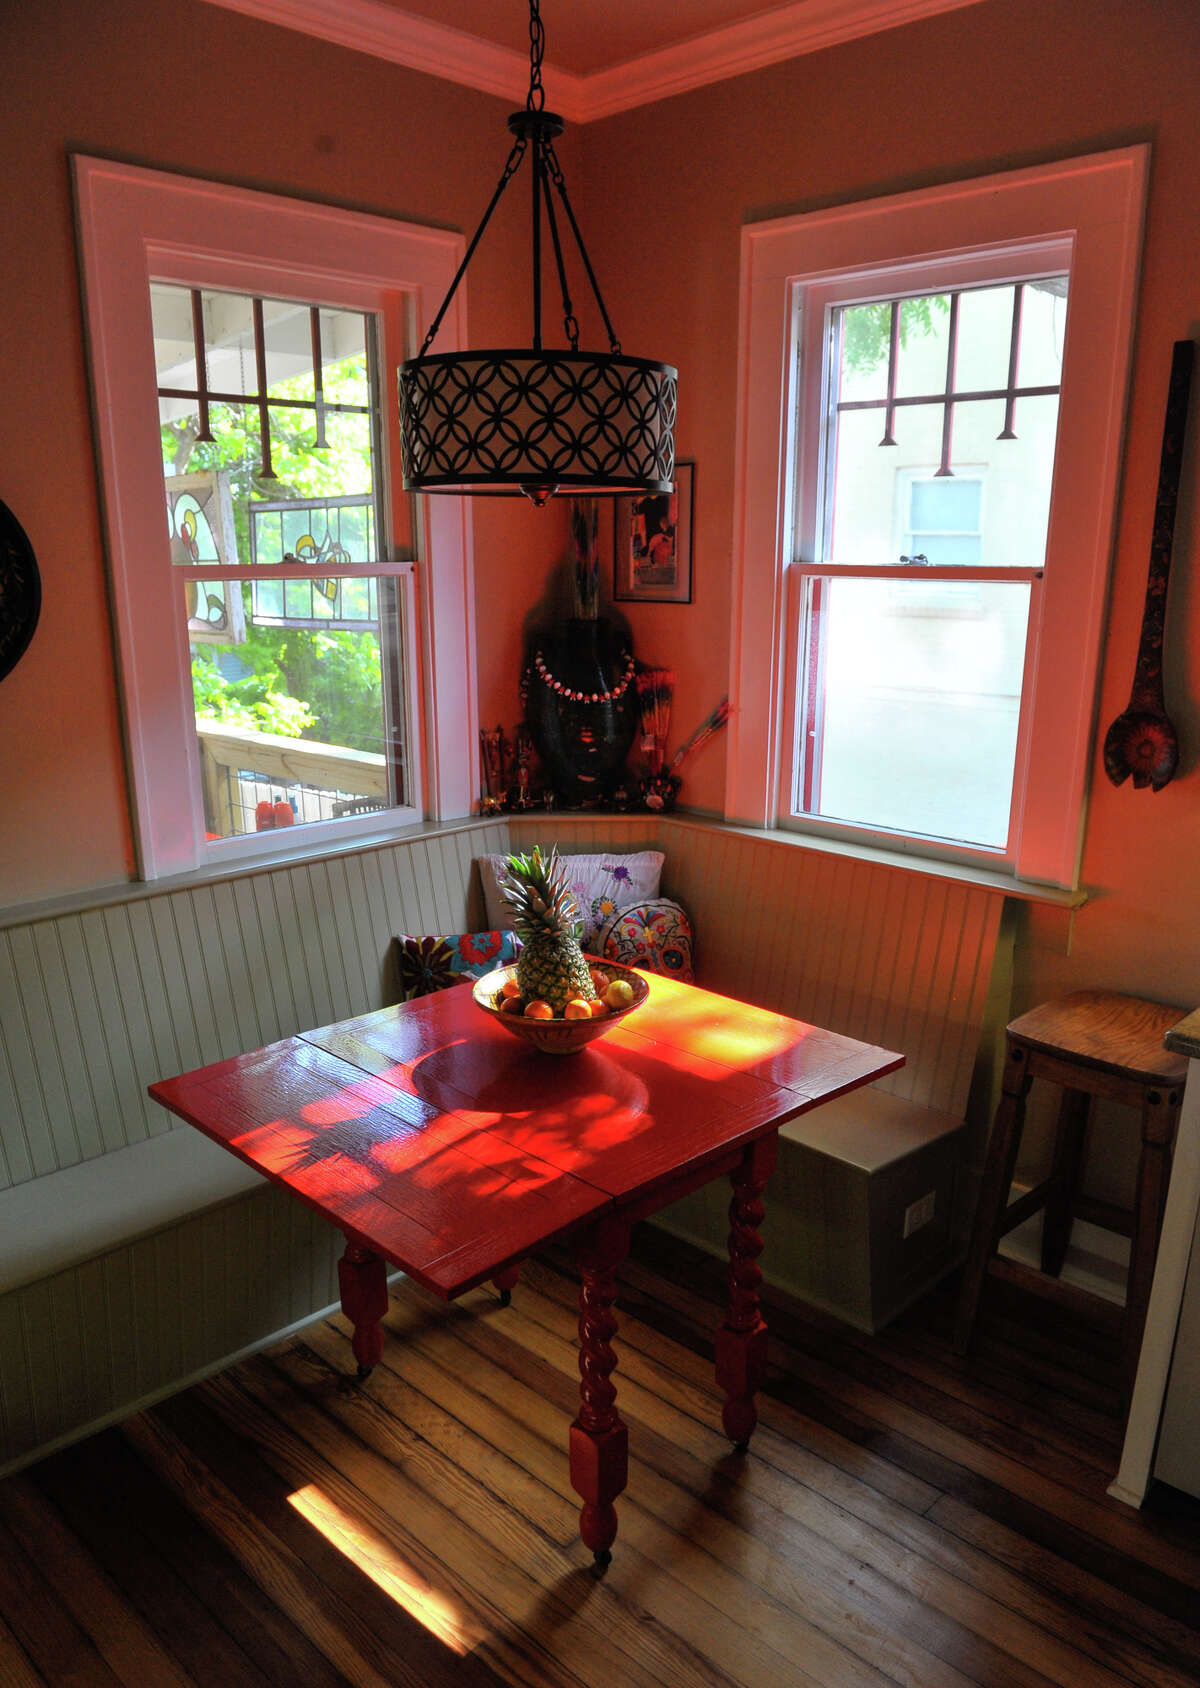 A breakfast nook in the kitchen of the Ruthie Foultz home.